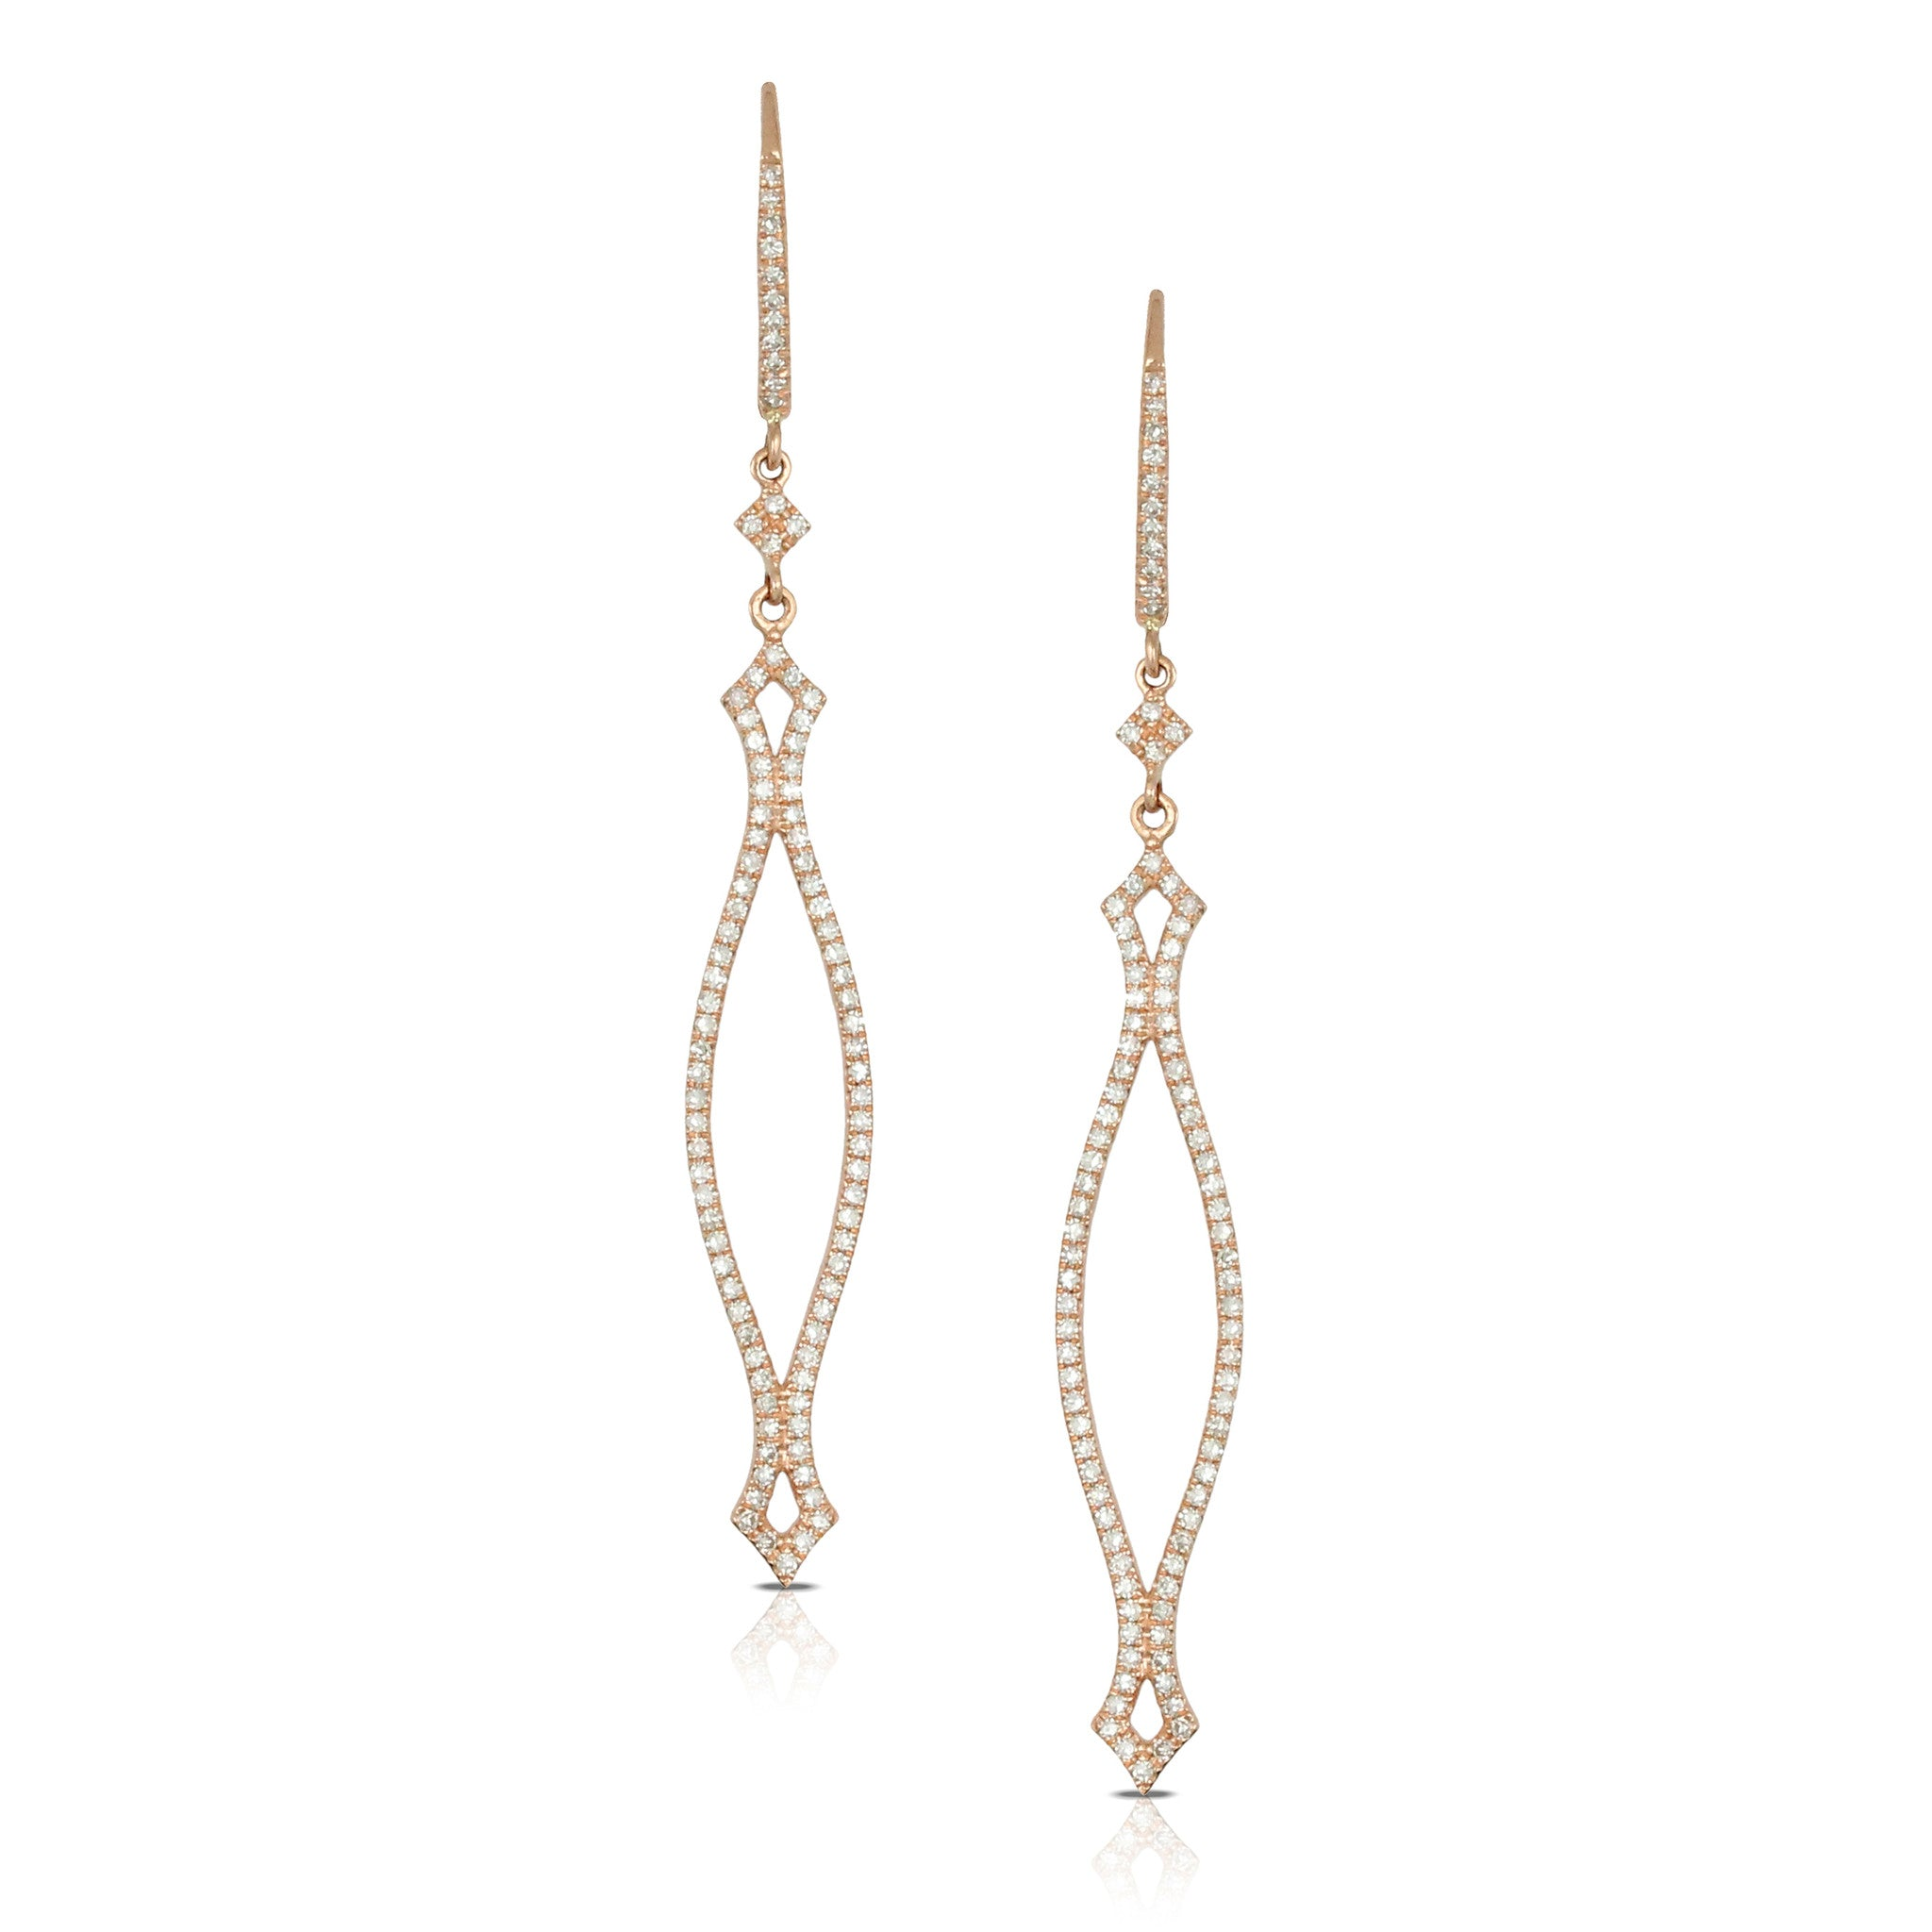 Doves Ladies 18k Rose Gold Diamond Earrings by Doron Paloma